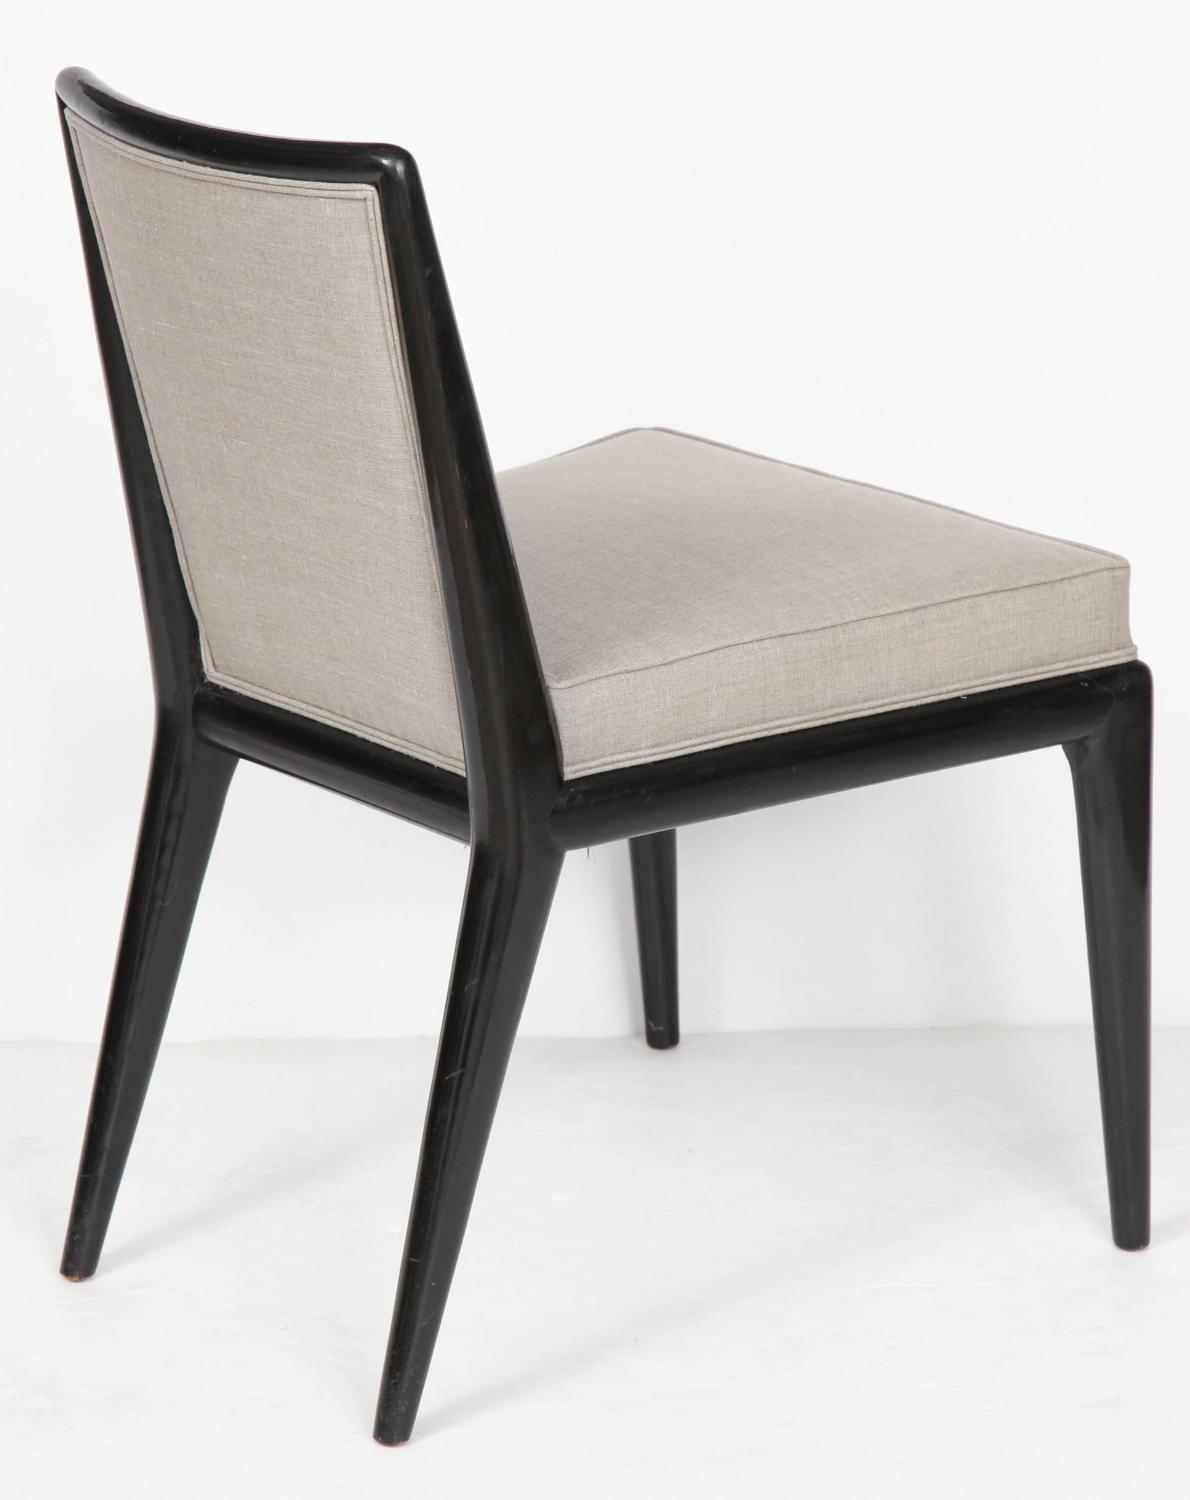 Six Black Lacquer Dining Chairs By Robsjohn Gibbings At